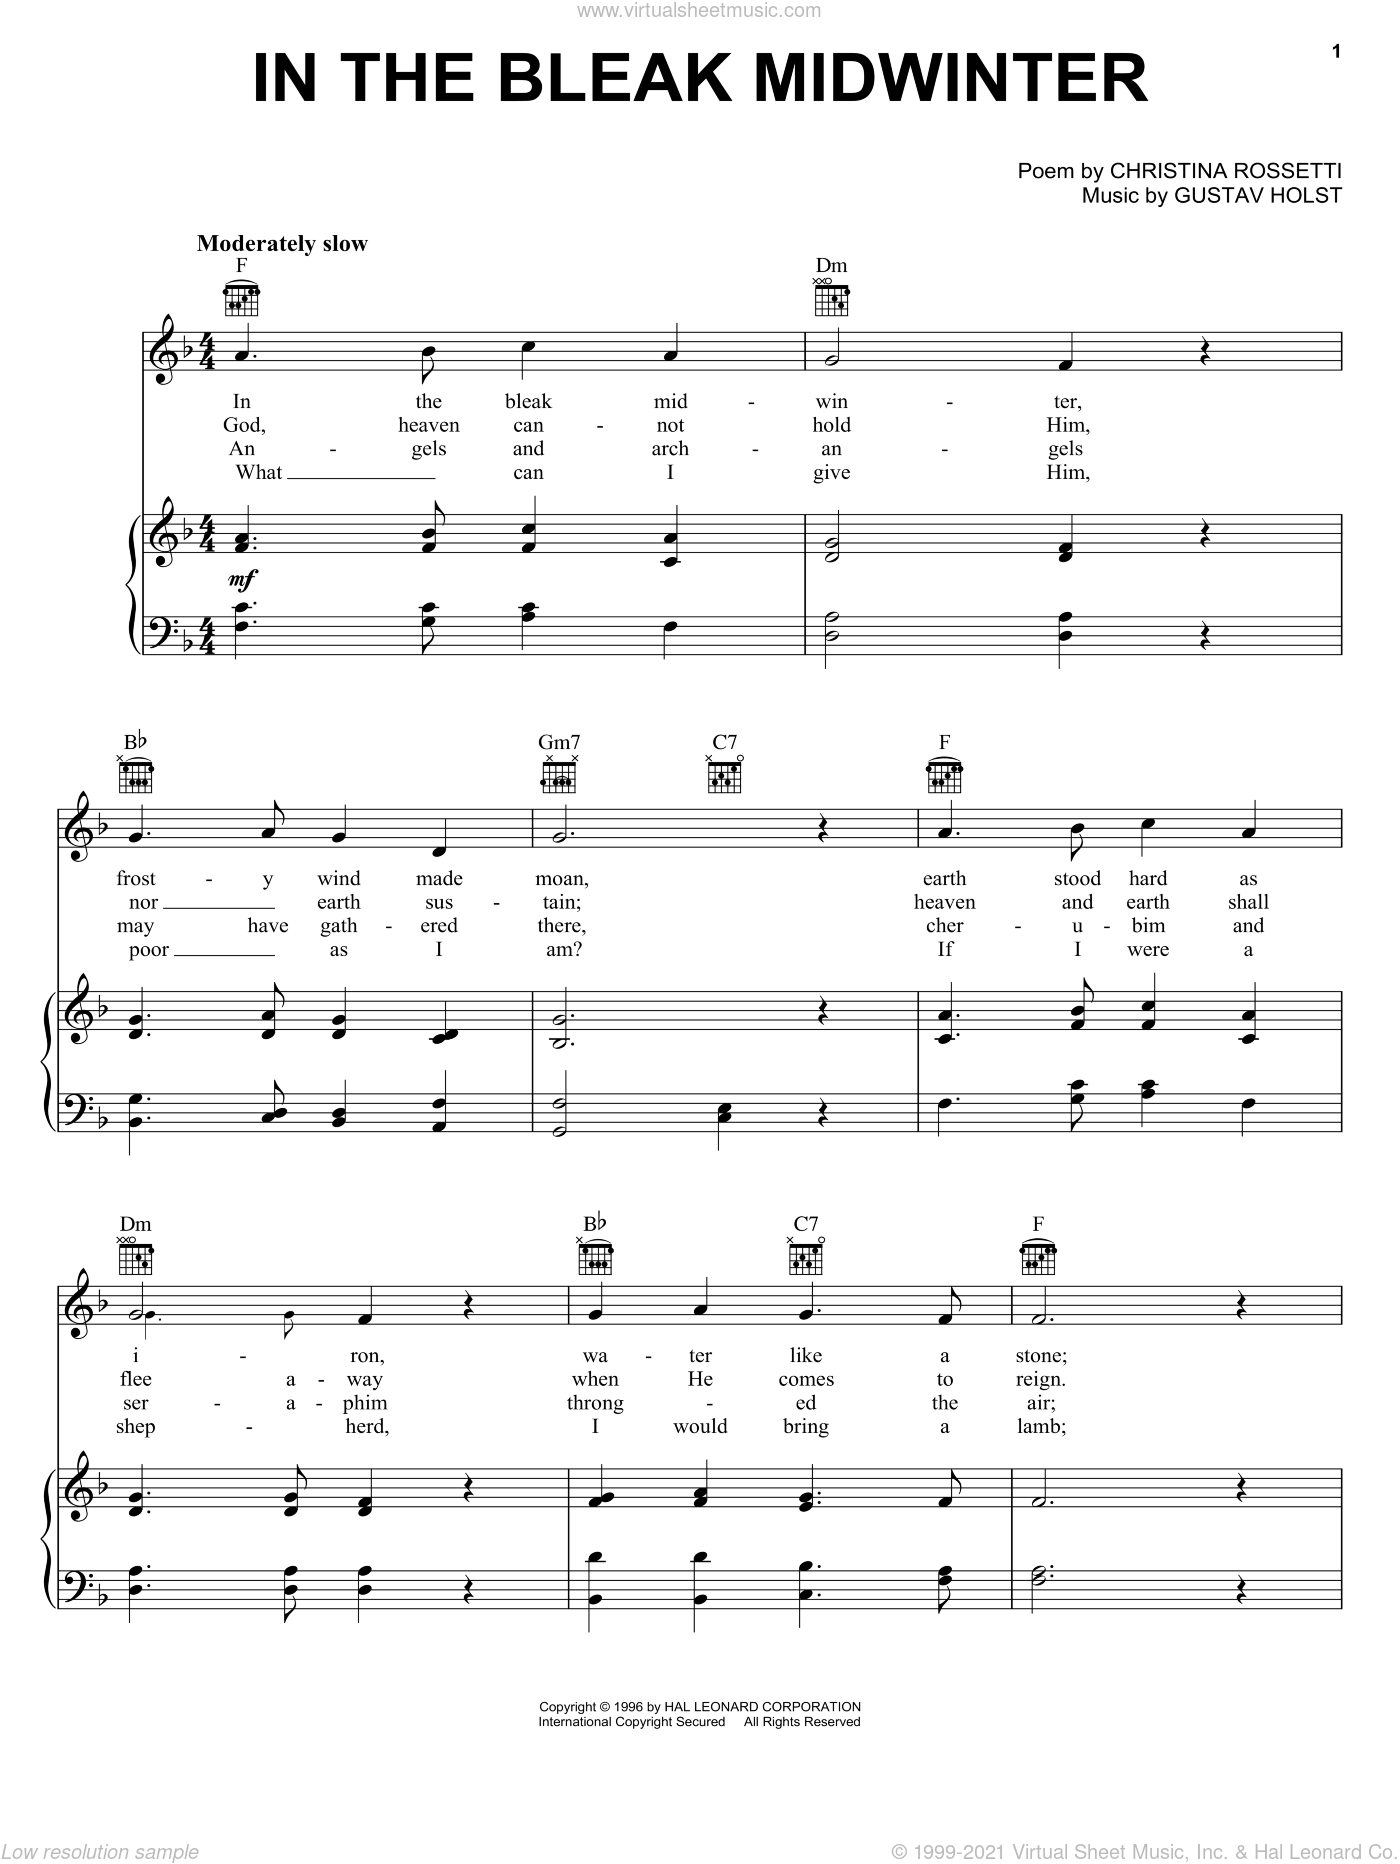 In The Bleak Midwinter sheet music for voice, piano or guitar by Christina Rossetti and Gustav Holst. Score Image Preview.